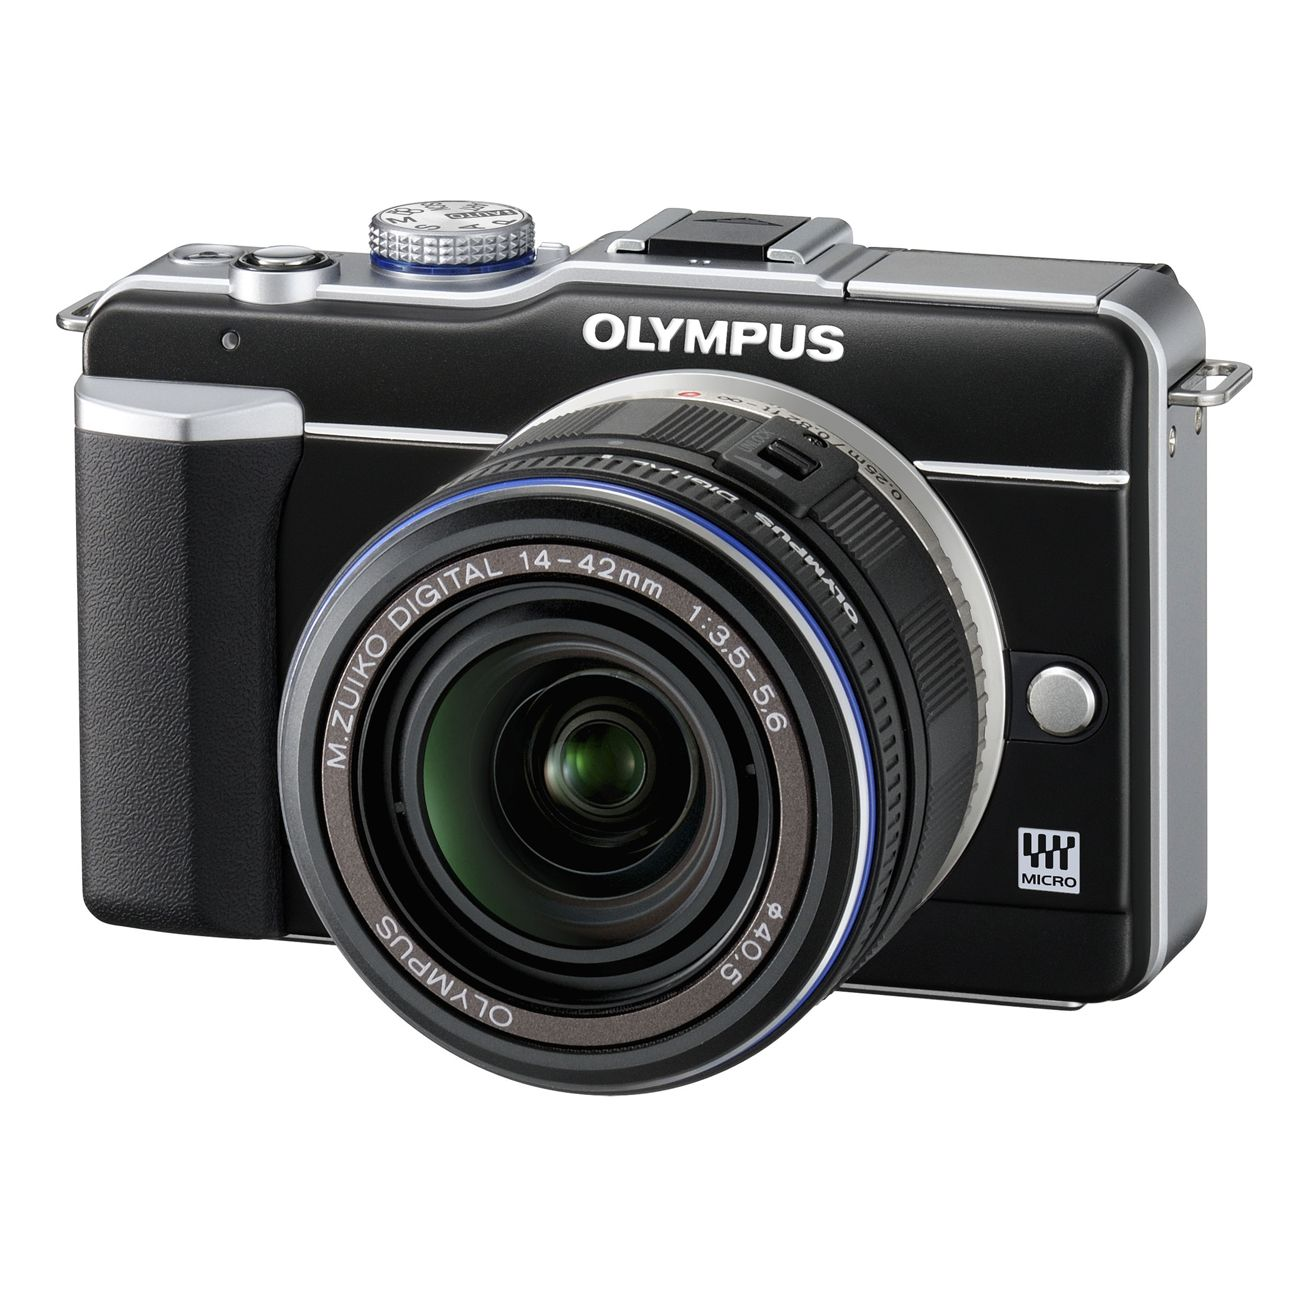 Olympus E-PL1 Micro Four Thirds Digital SLR Camera with 14-42mm Lens at JohnLewis